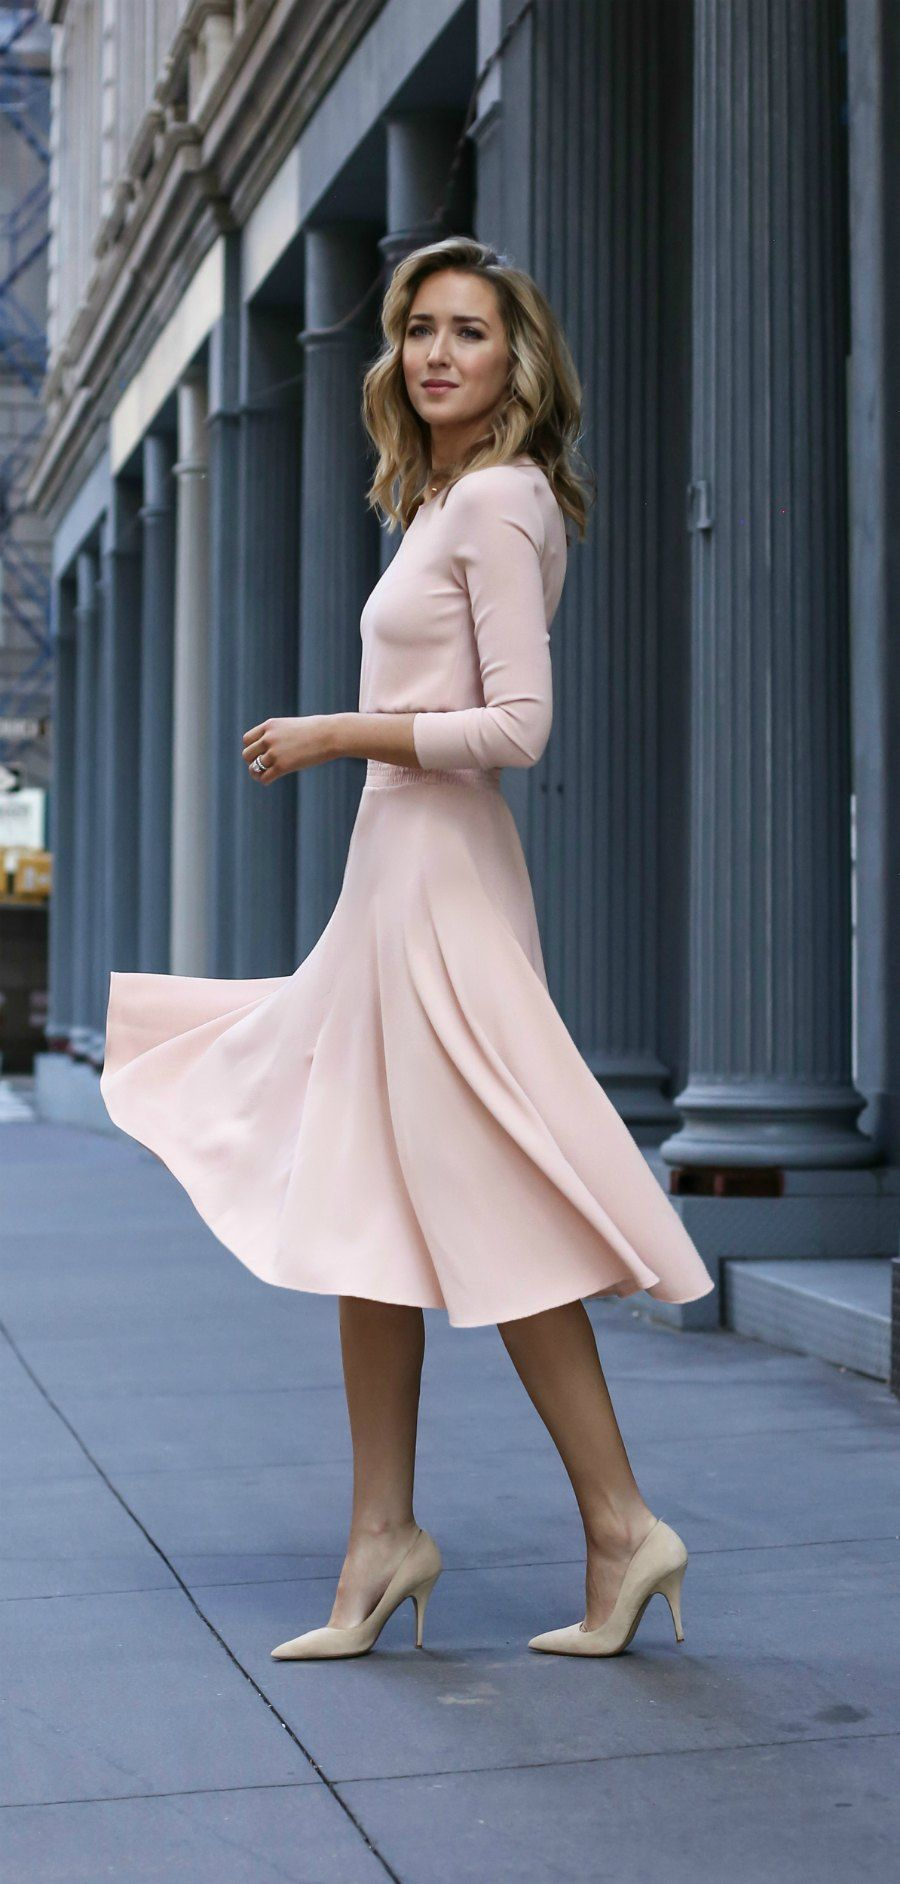 bf75f2fbae081 Pale blush pink midi dress with blouson top above ruched waist line, full  circle flare skirt, nude suede classic pointy to pumps